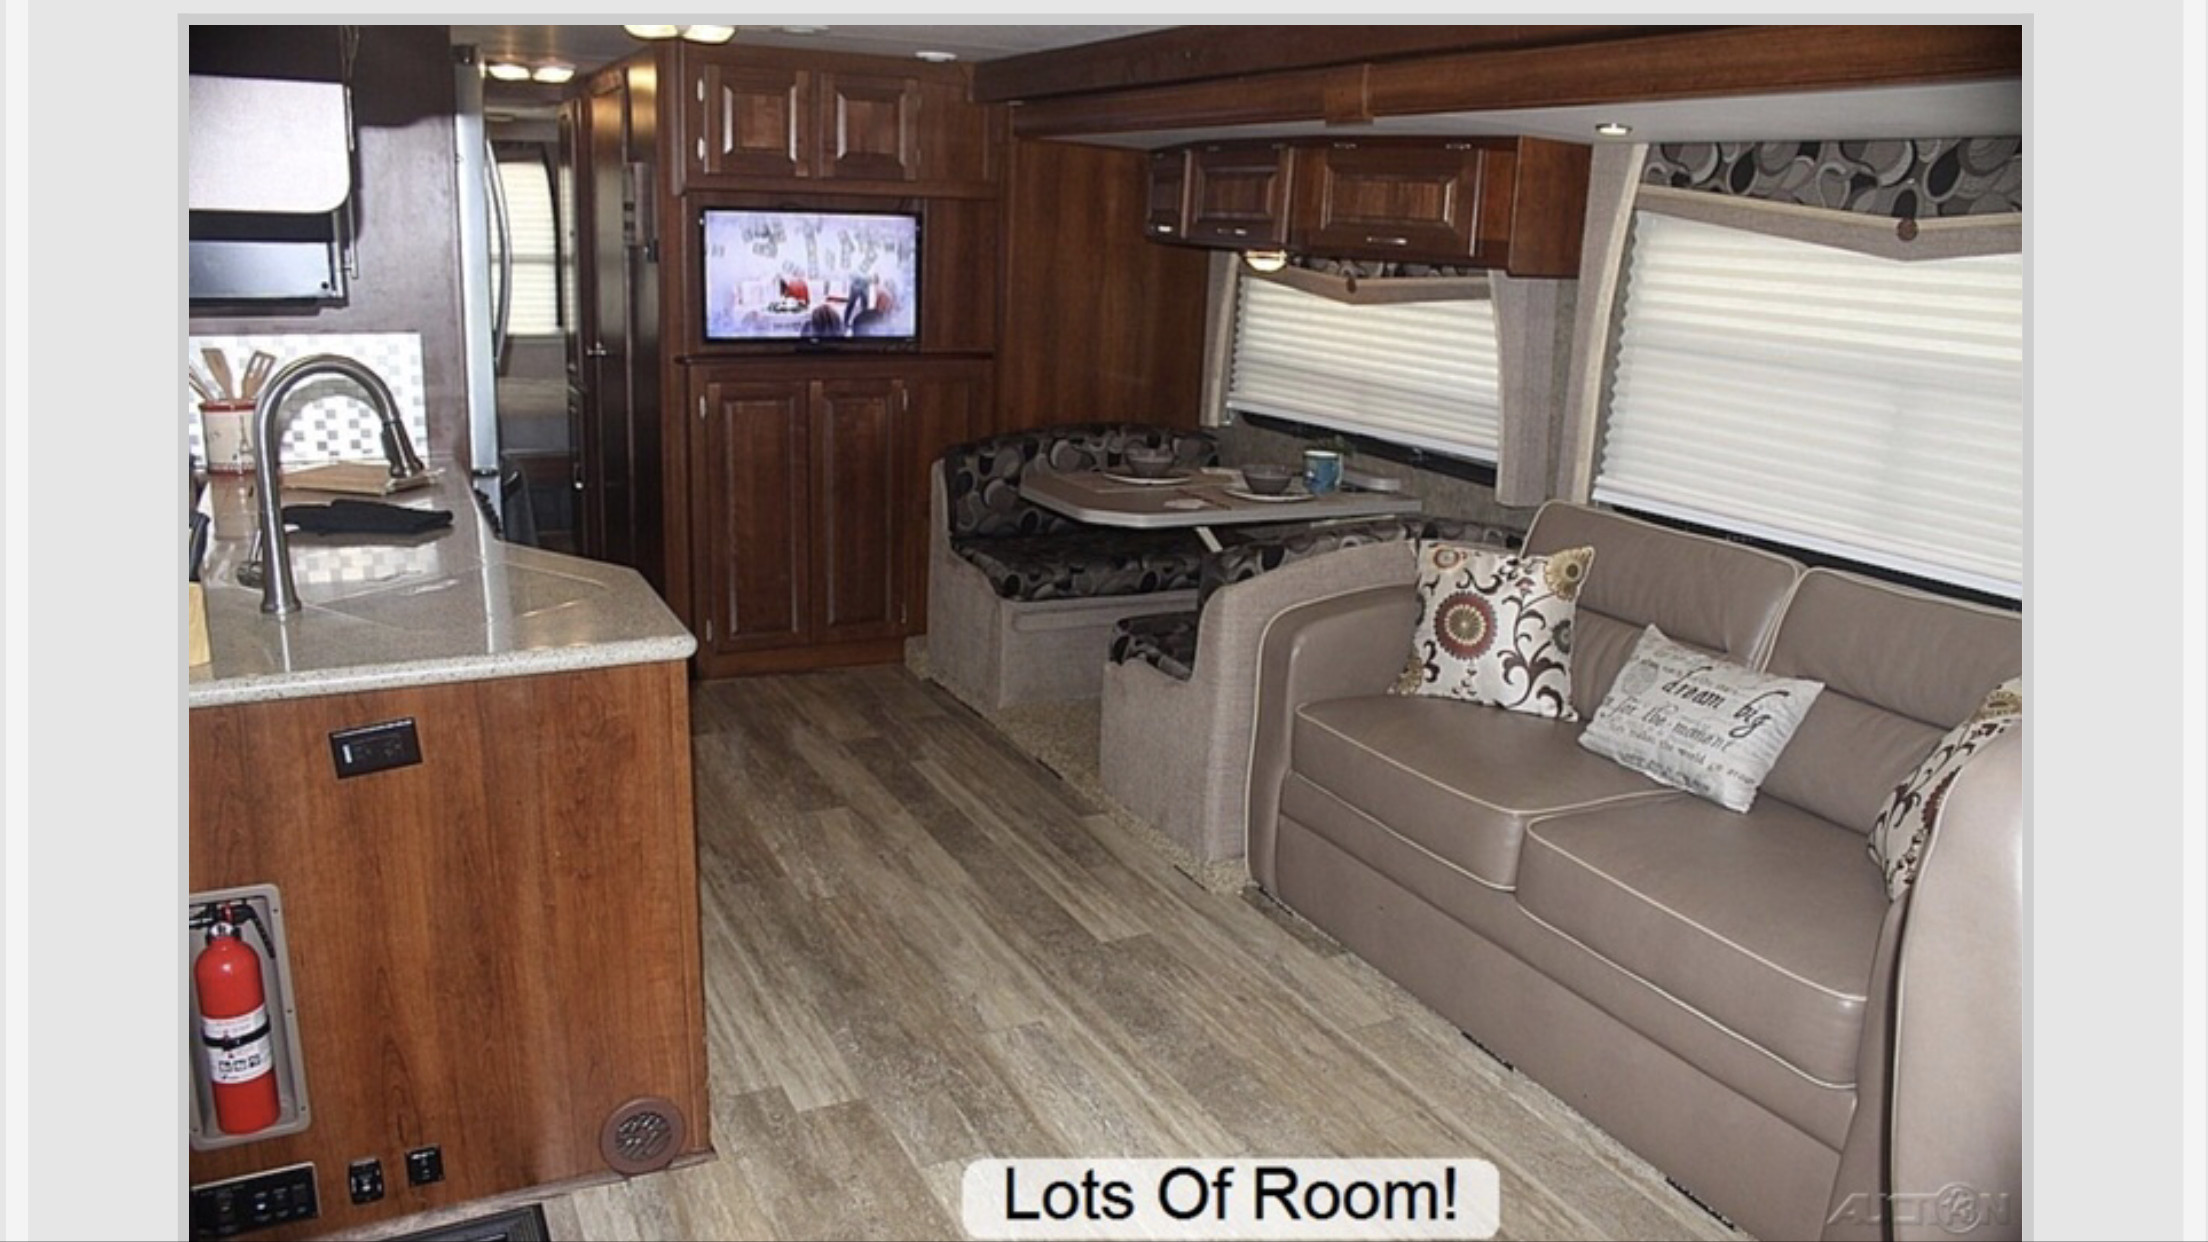 Hardwood Floor Repair Wilmington Nc Of top 25 Fayetteville Nc Rv Rentals and Motorhome Rentals Outdoorsy Inside Hittpvpu3o2z8w07yfnk